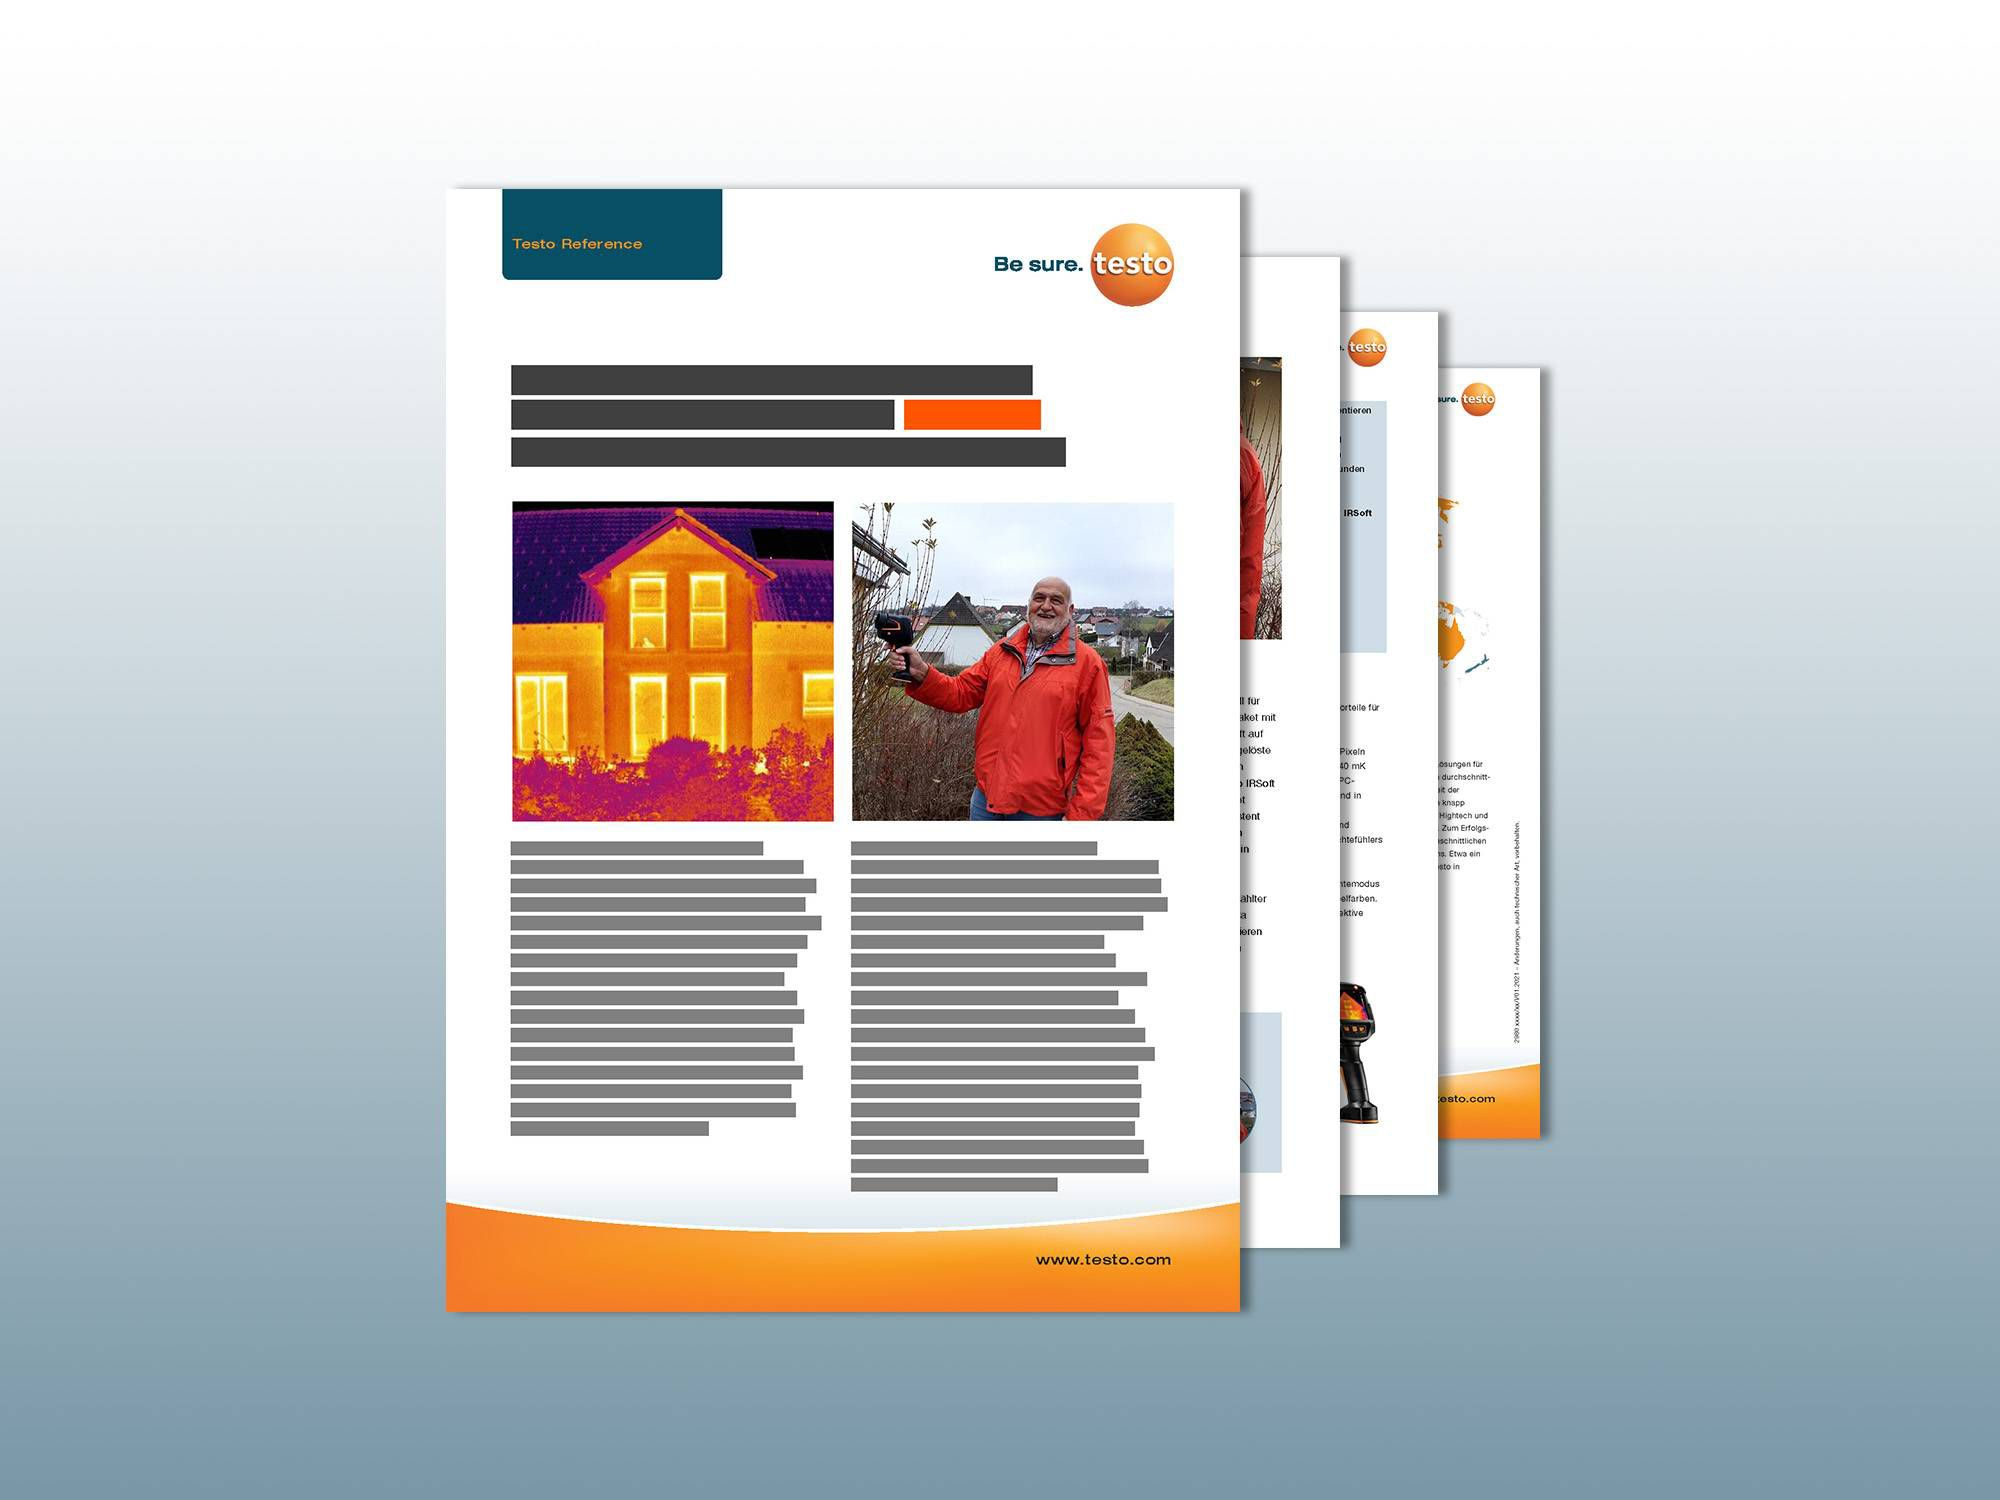 Schlater reference case study